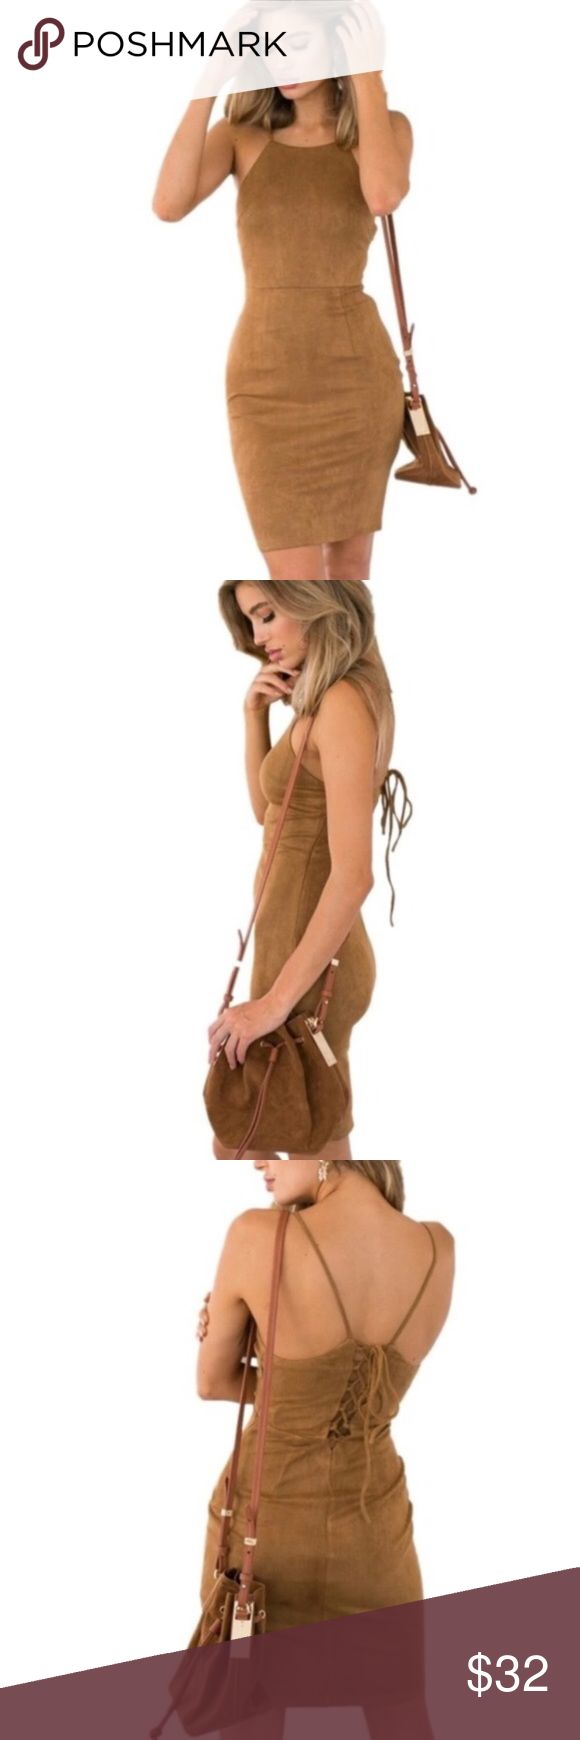 """🆕Sexy bodycon dress ❤️ Super cute and flirty camel Bodycon dress. Made out of acrylic and spandex materials (so it does have some stretch to it). It ties up from the back, spaghetti strap and it lands above the knee depending on ones height and body type. MEASUREMENTS: LENGTH: 29"""" BUST:34"""" ☺️ Dorimas Closet Dresses Midi"""